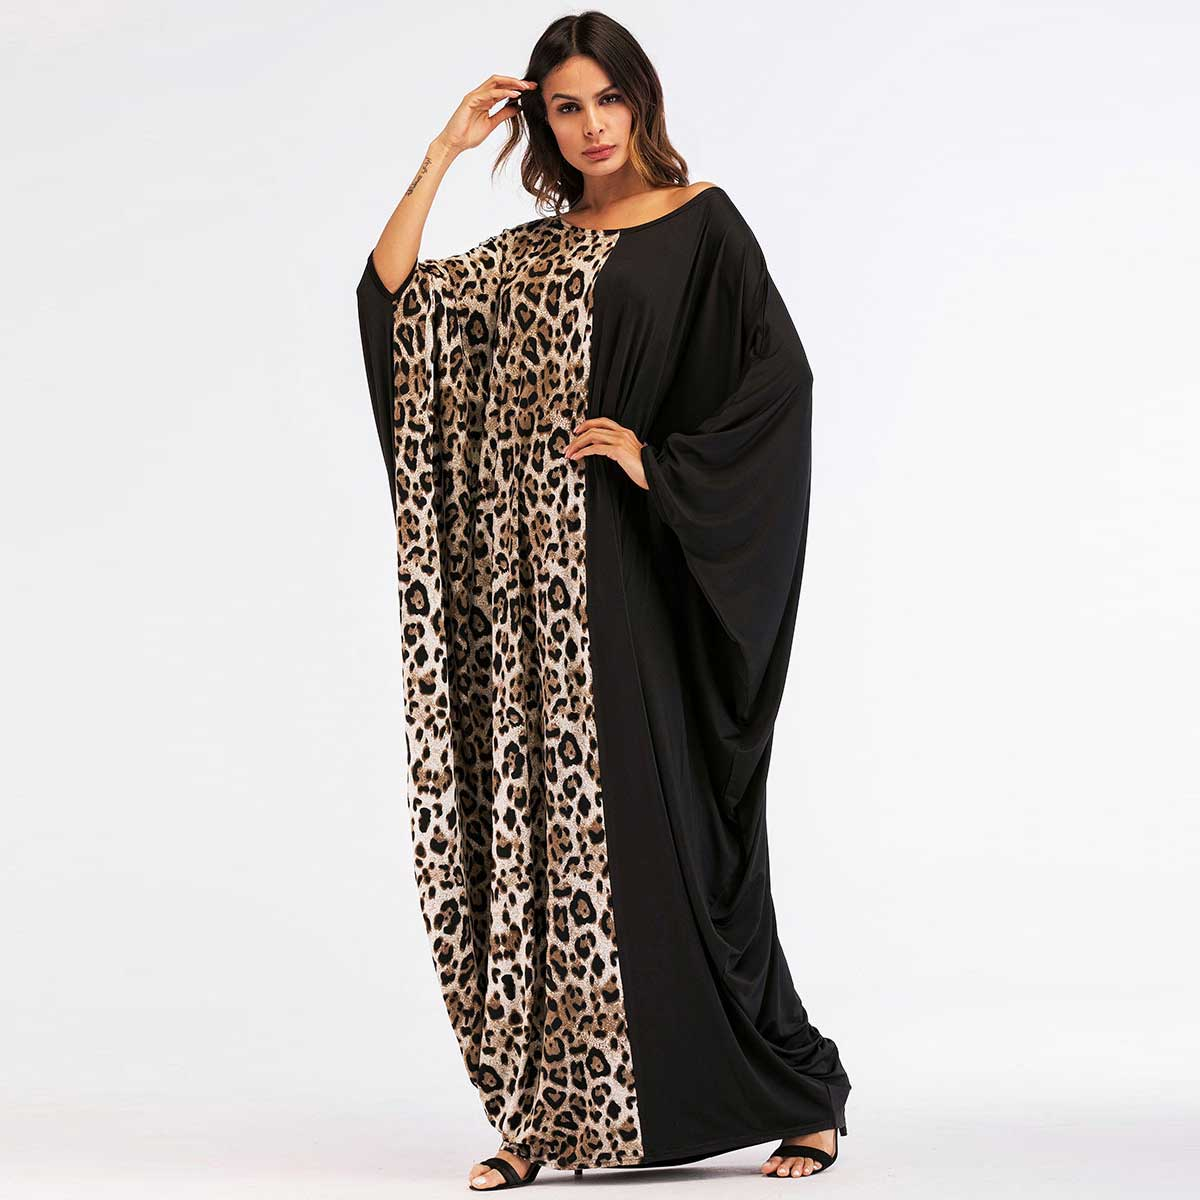 2019 Leopard Patchwork Women Abaya New Style Muslim Long Dress Arabic Dubai Kaftan Islamic Maxi Vestidos Bat sleeve VKDR1450-in Islamic Clothing from Novelty & Special Use on Aliexpress.com | Alibaba Group